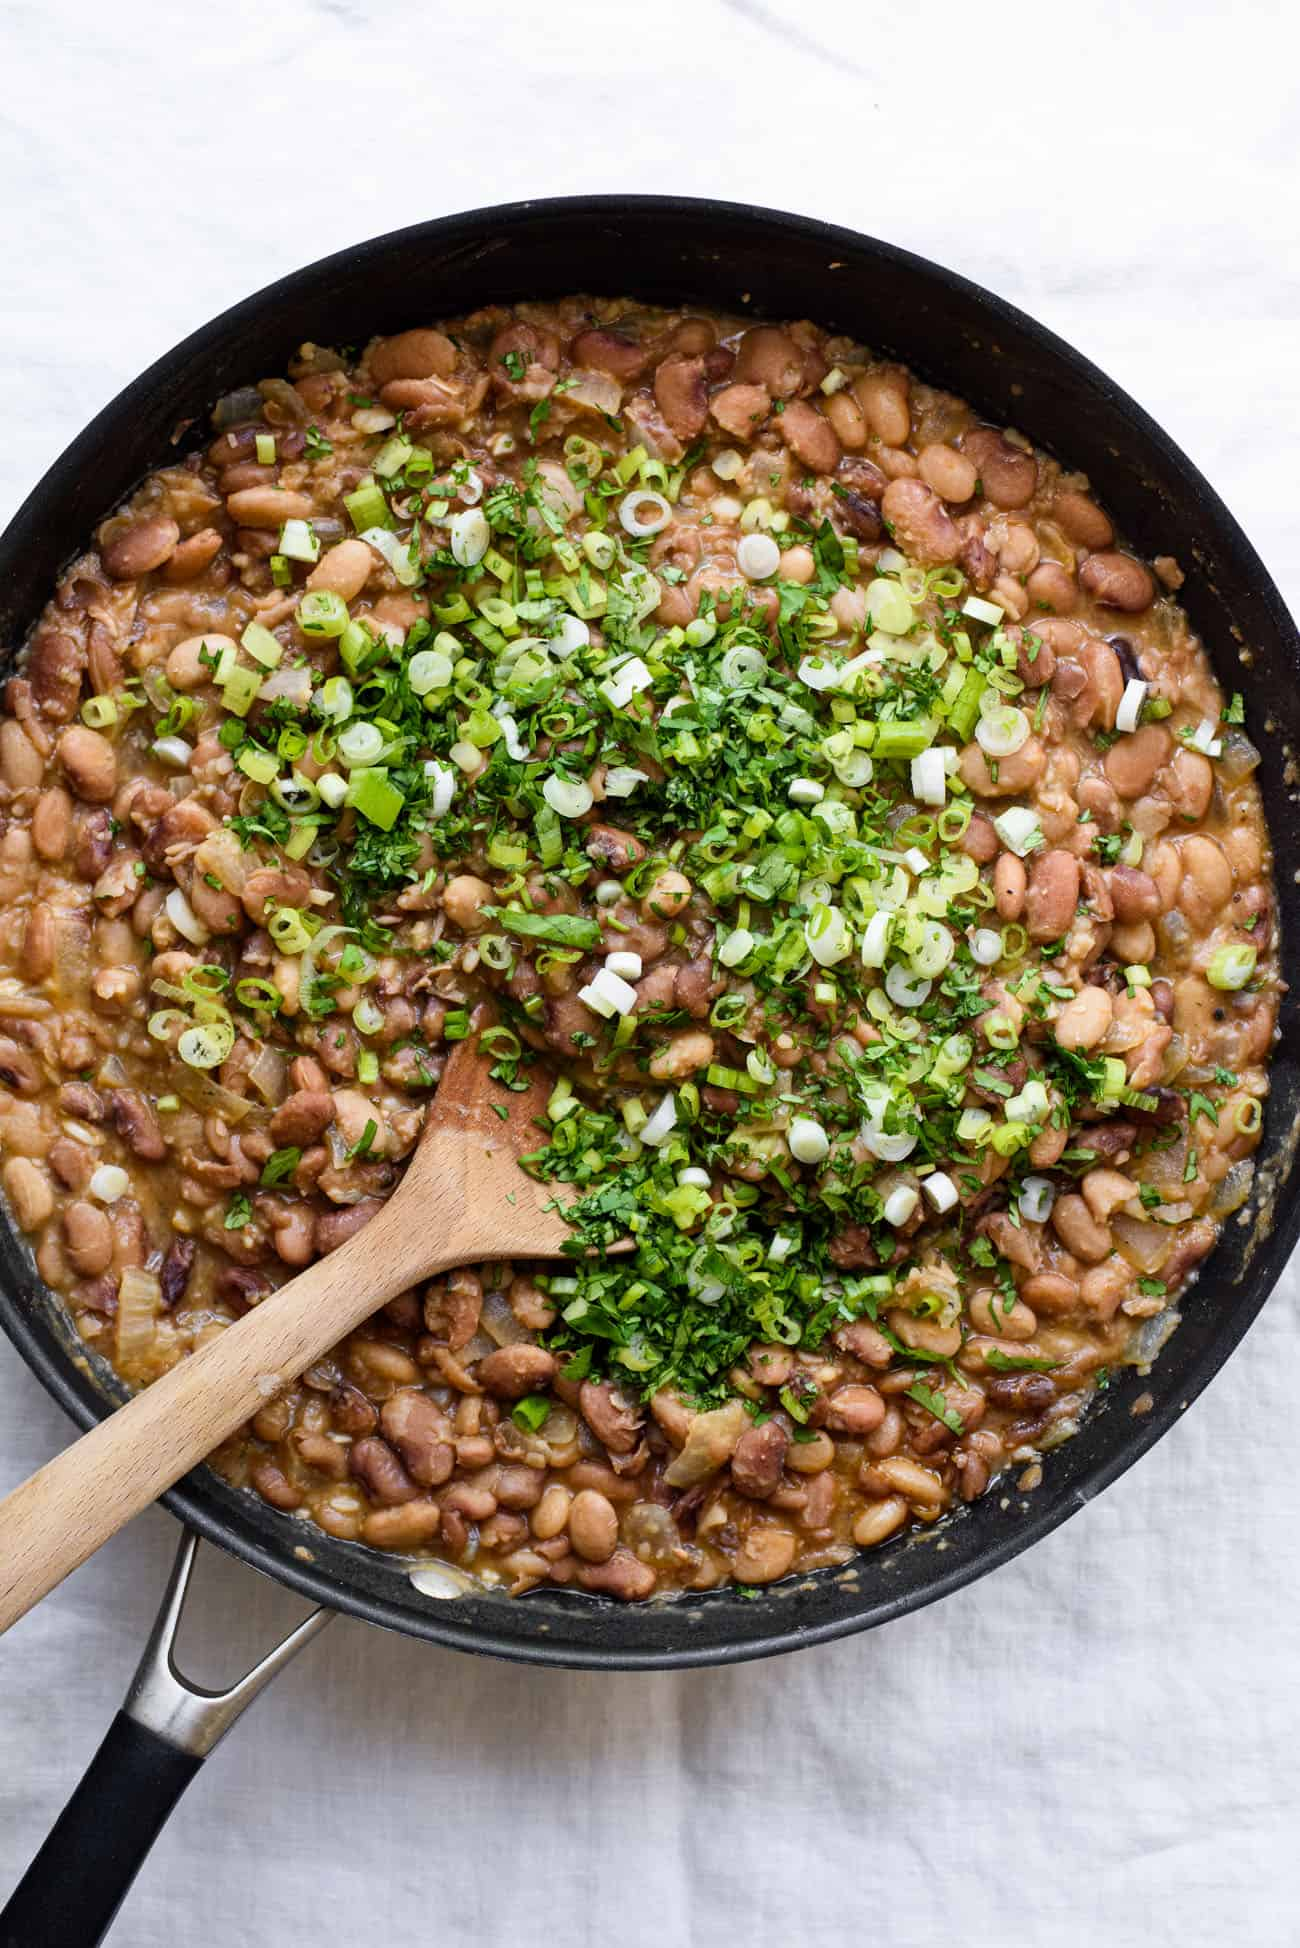 Brothy, refried pinto beans with a heap of cilantro and scallions on top